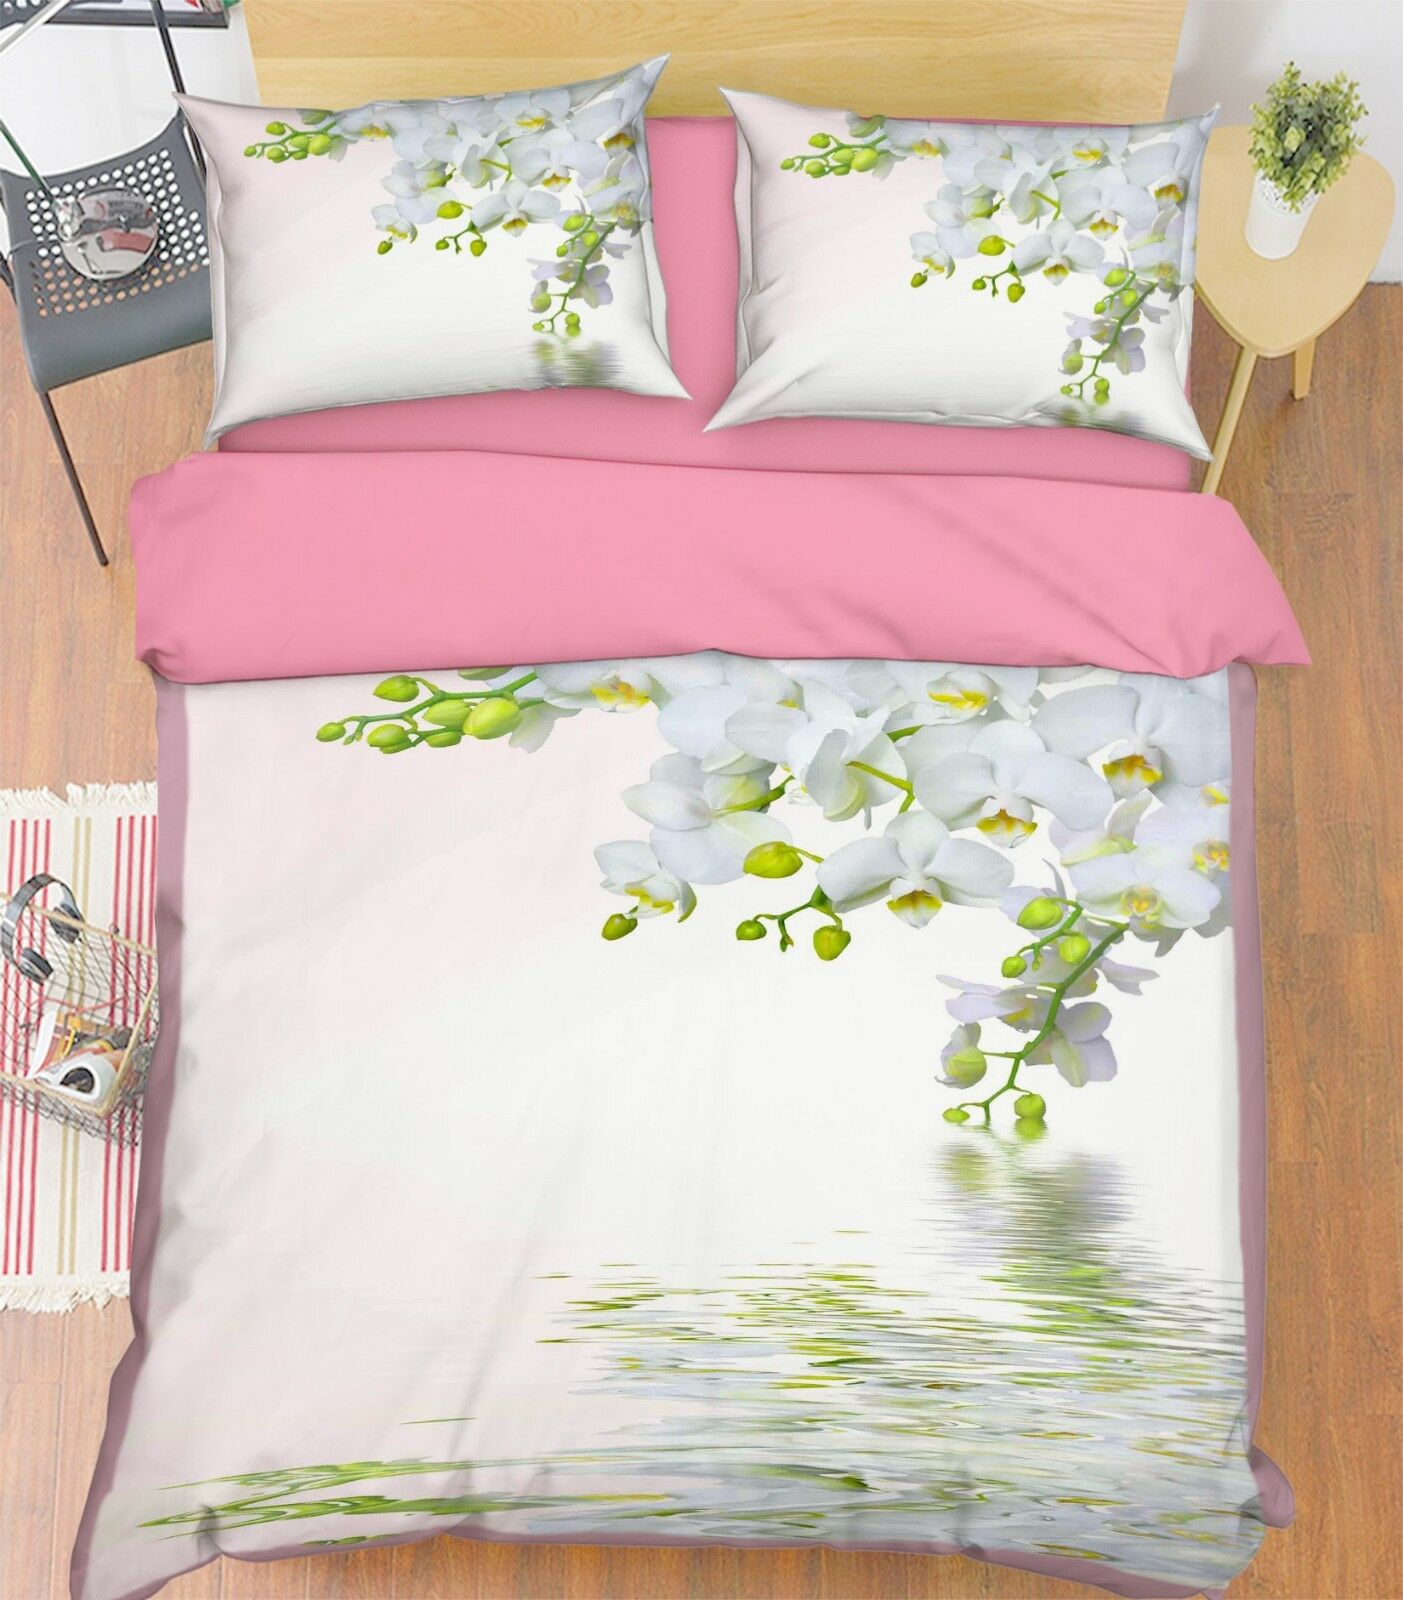 3D Flower Water 683 Bed Pillowcases Quilt Duvet Cover Set Single King UK Summer